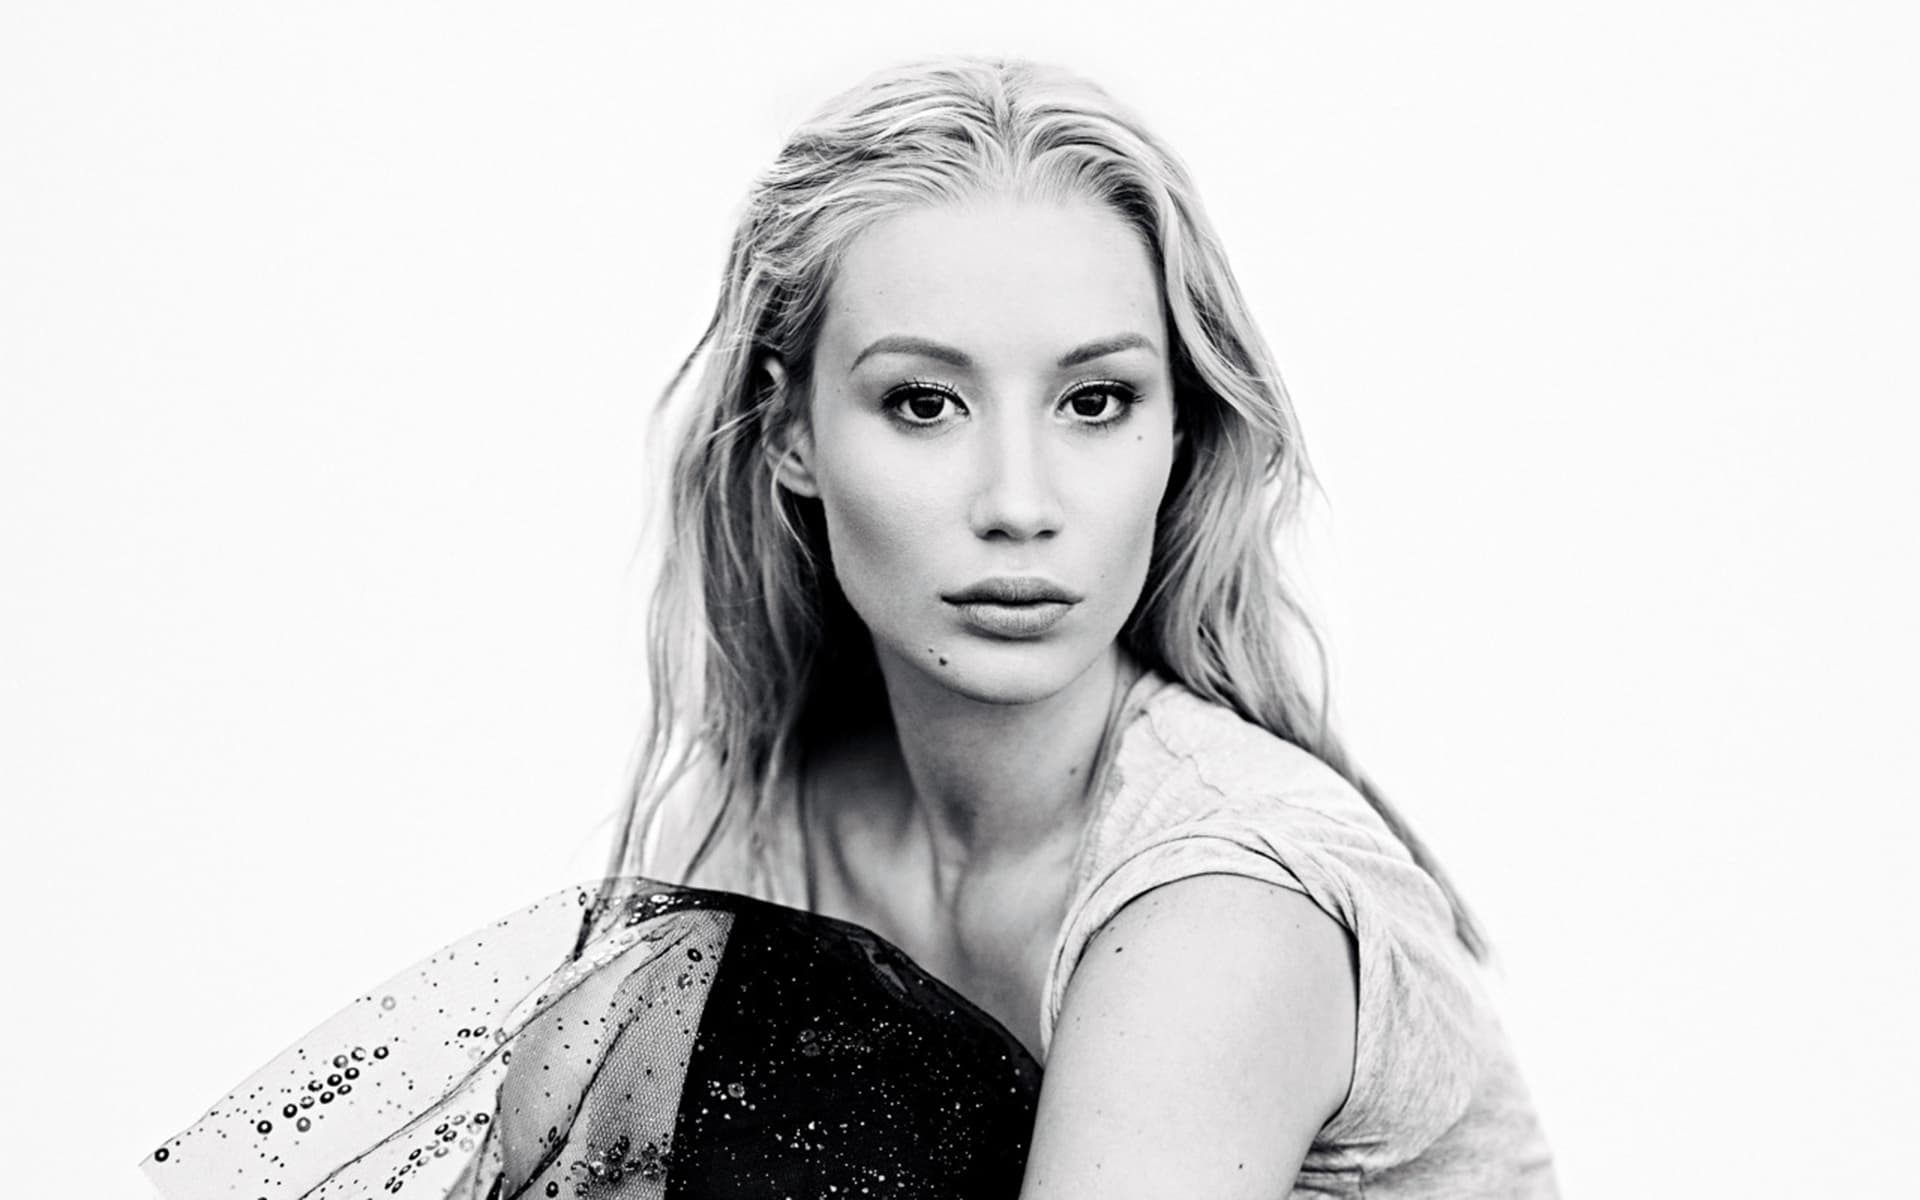 1920x1200 Monochrome Iggy Azalea Wallpaper 62193 1920x1200 px ~ HDWallSource.com